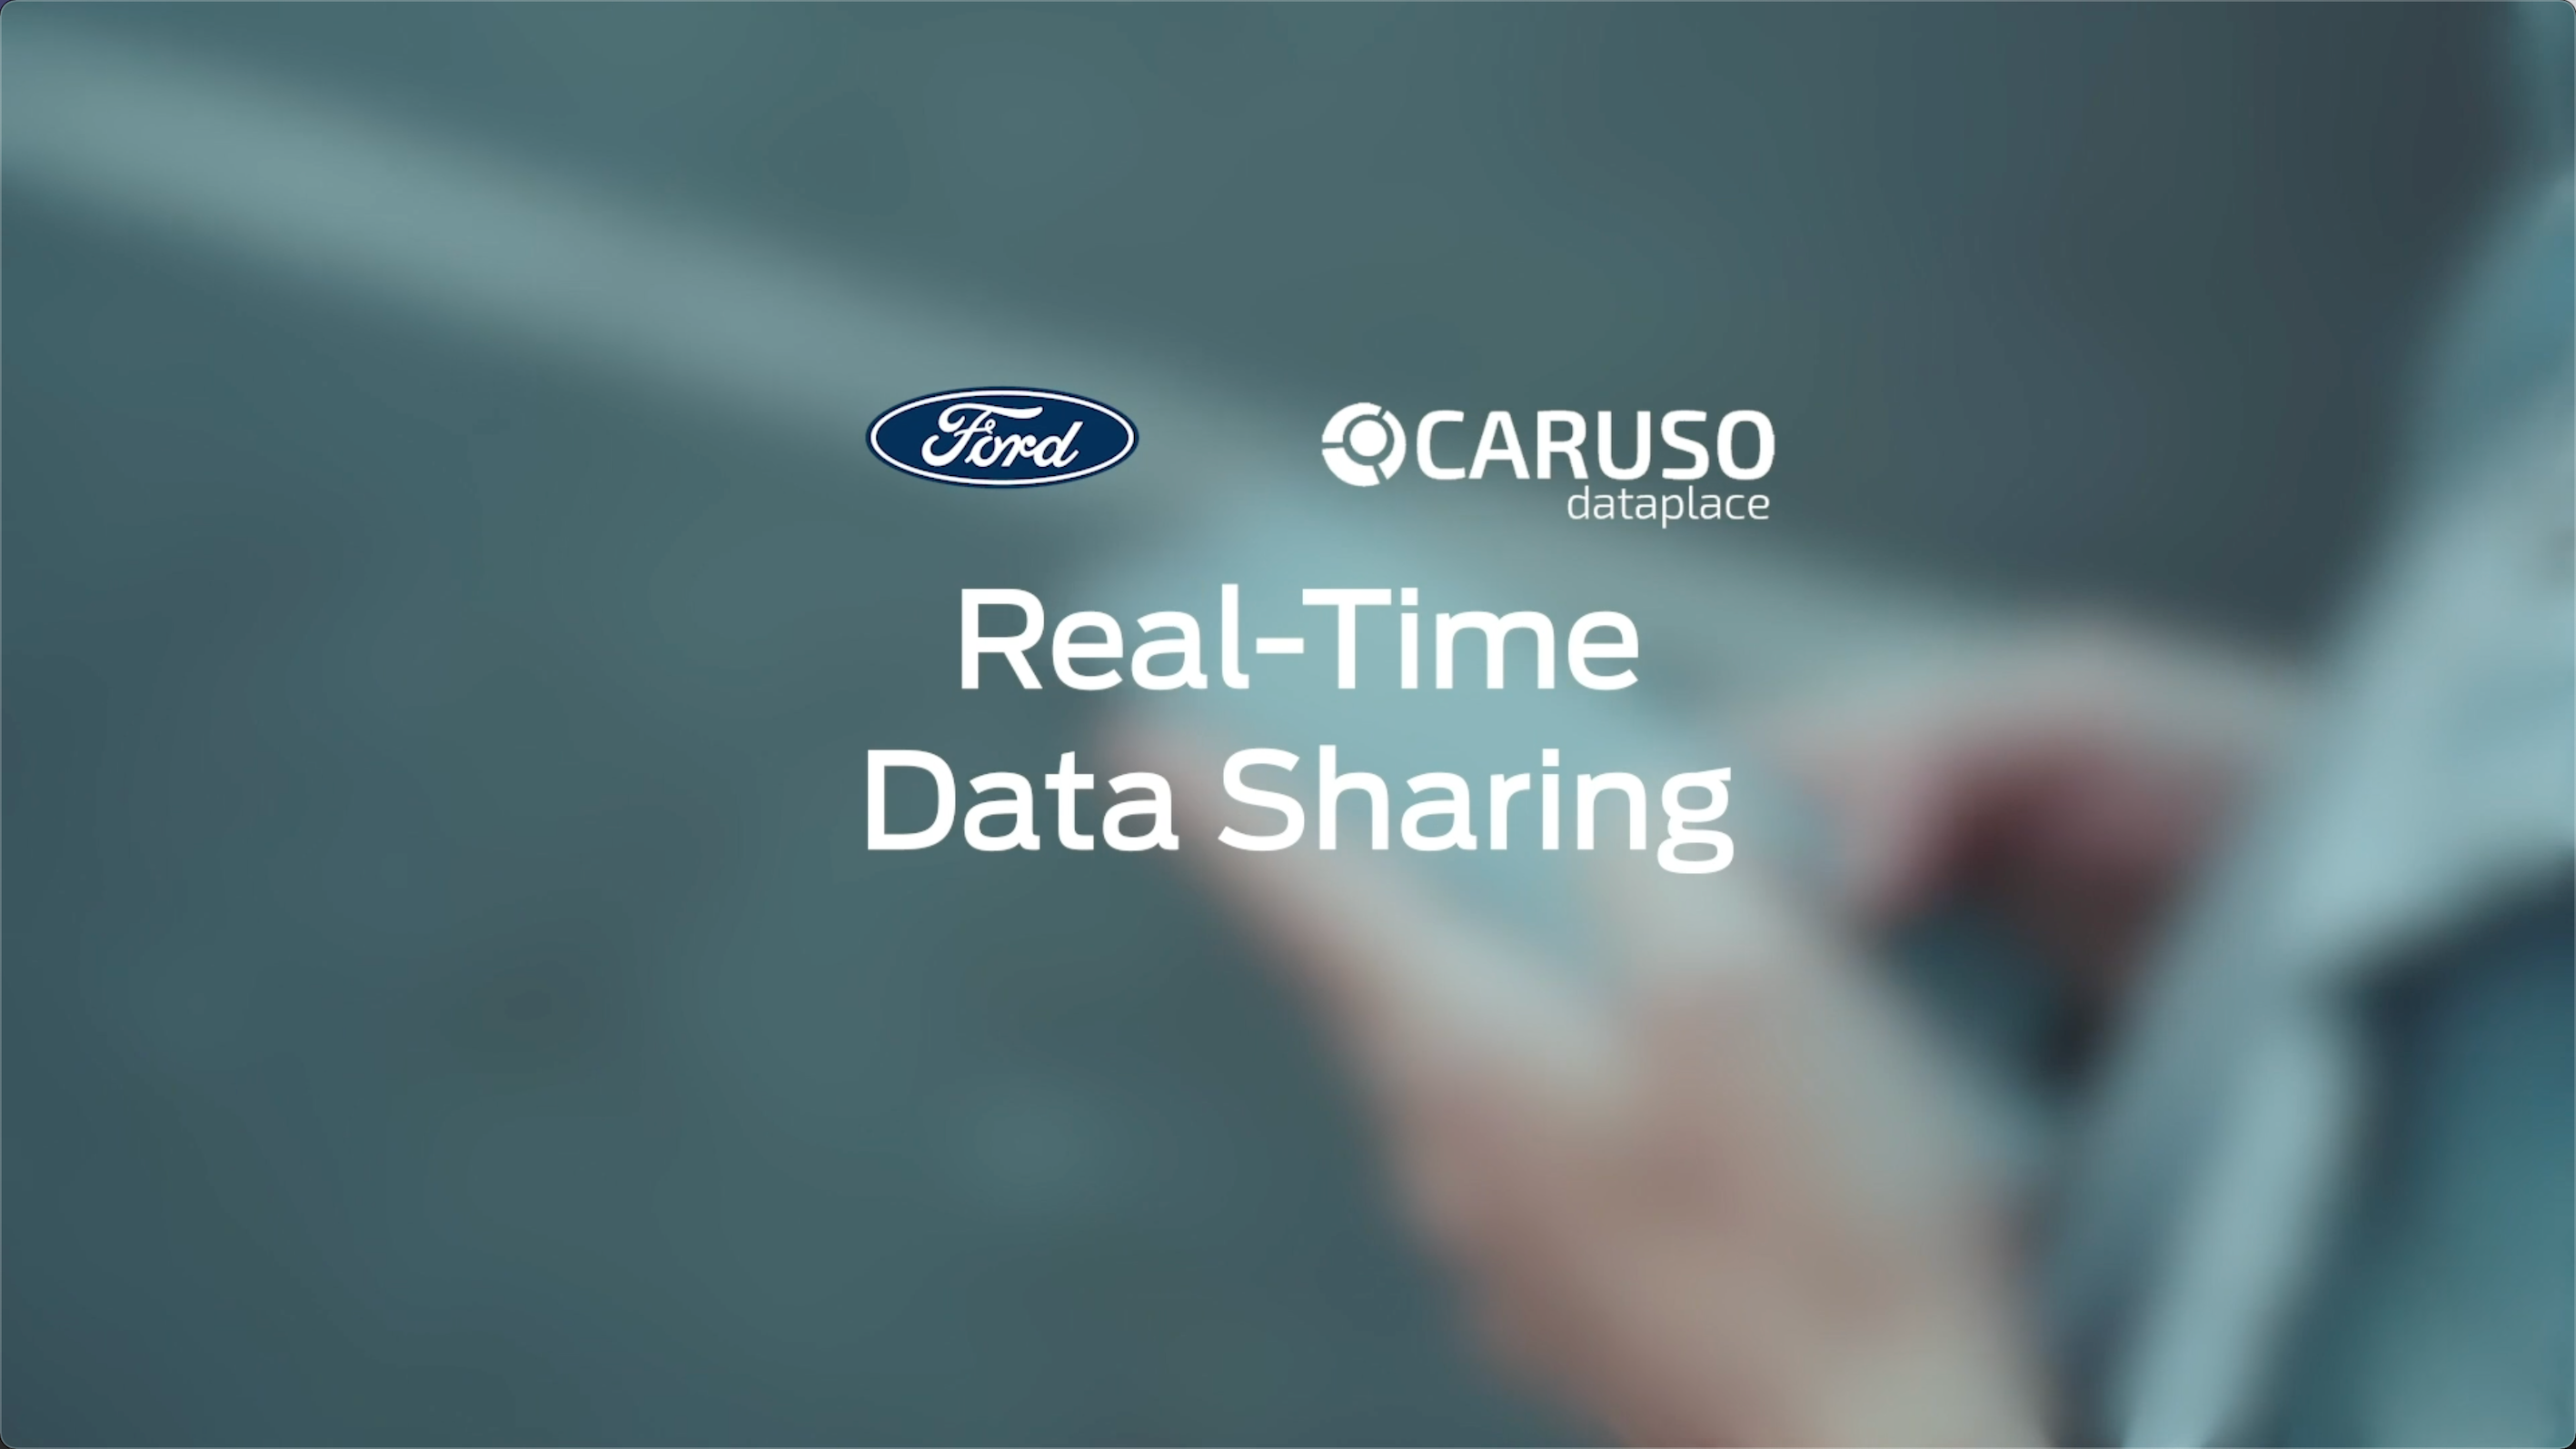 CARUSO and FORD – Real-Time Car Data Sharing